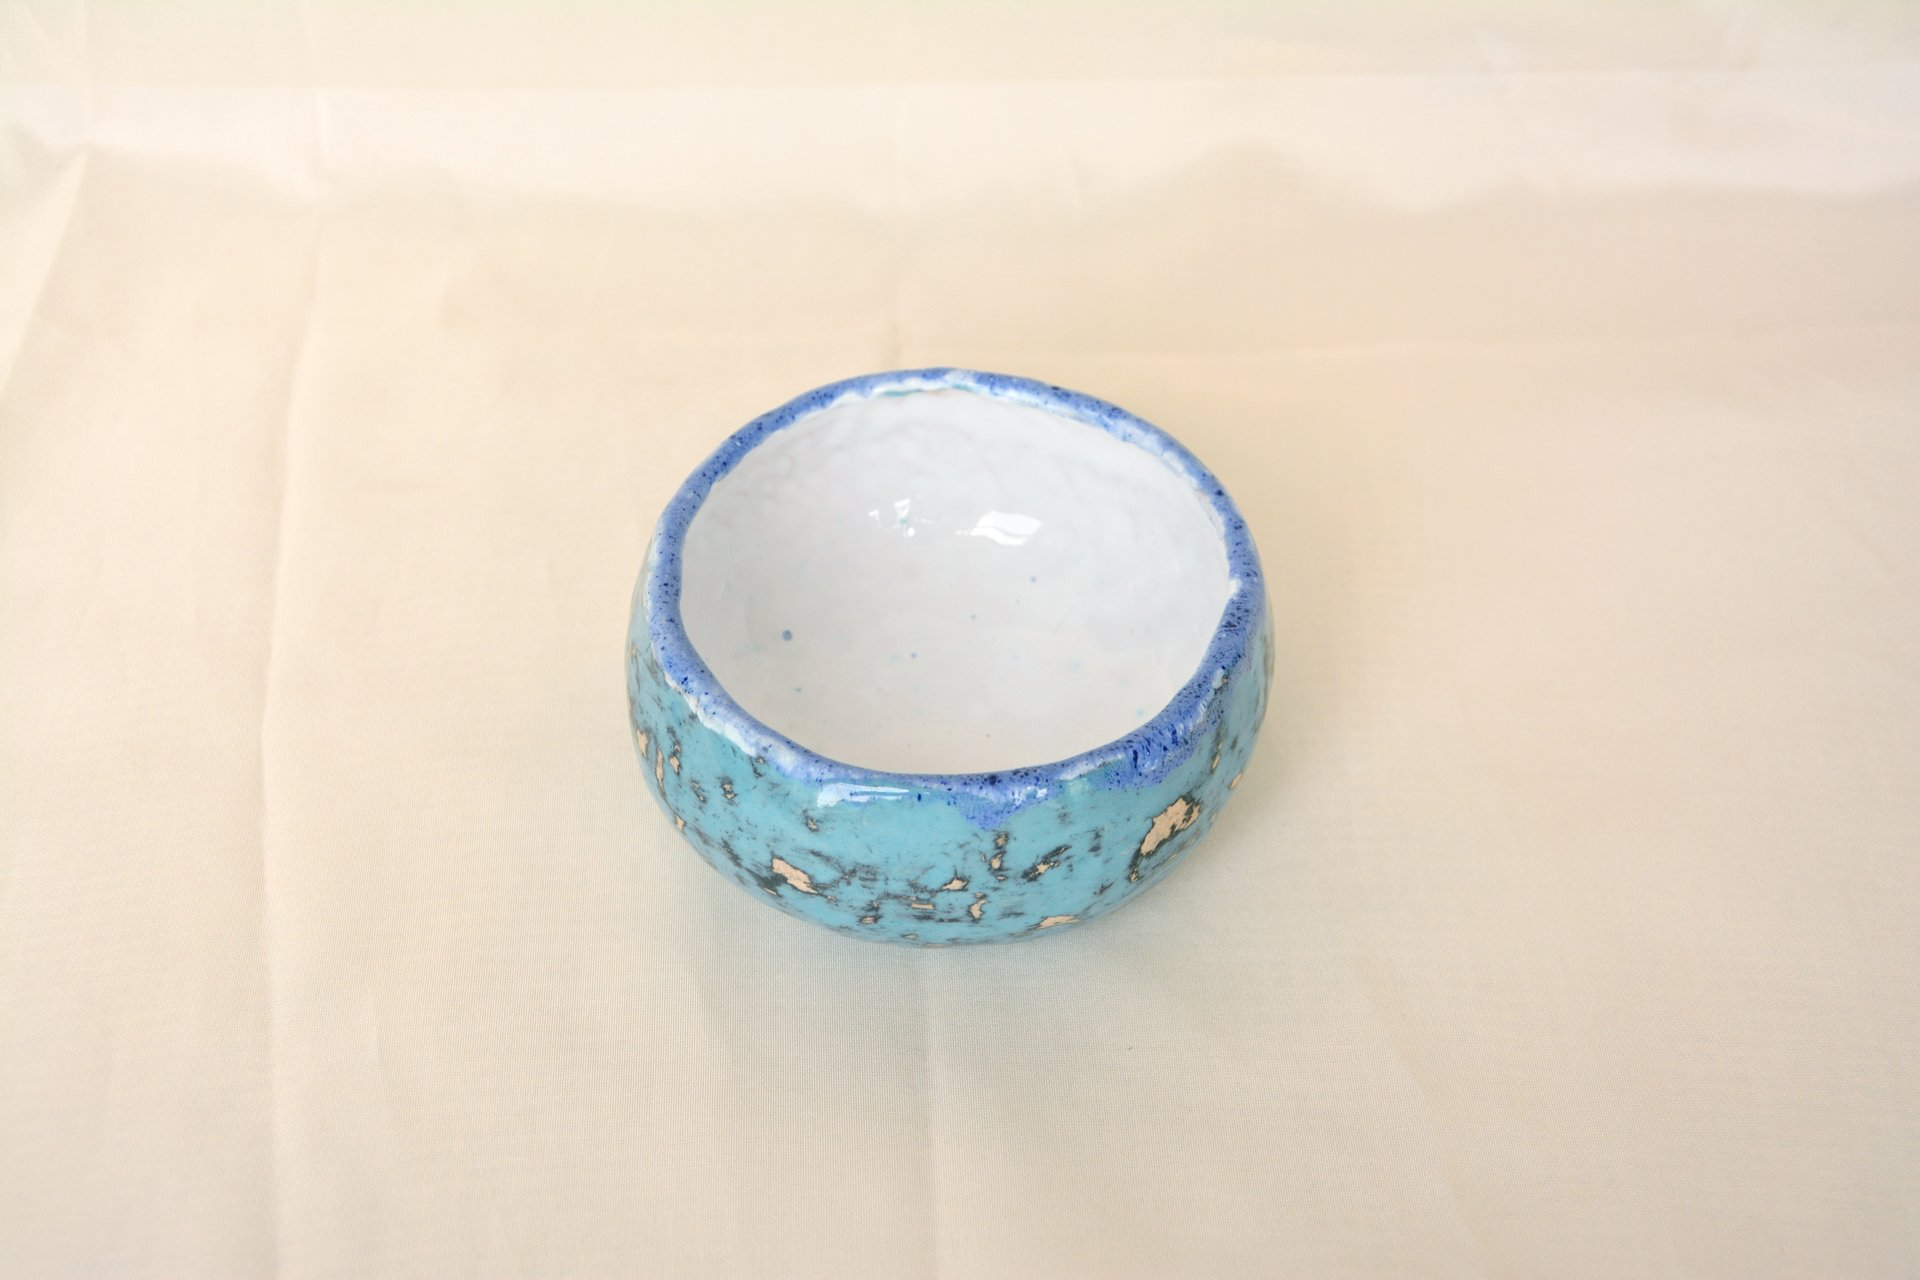 Multilayered blue - Сeramic Plates, diameter - 10 cm, height - 5 cm, photo 2 of 3.